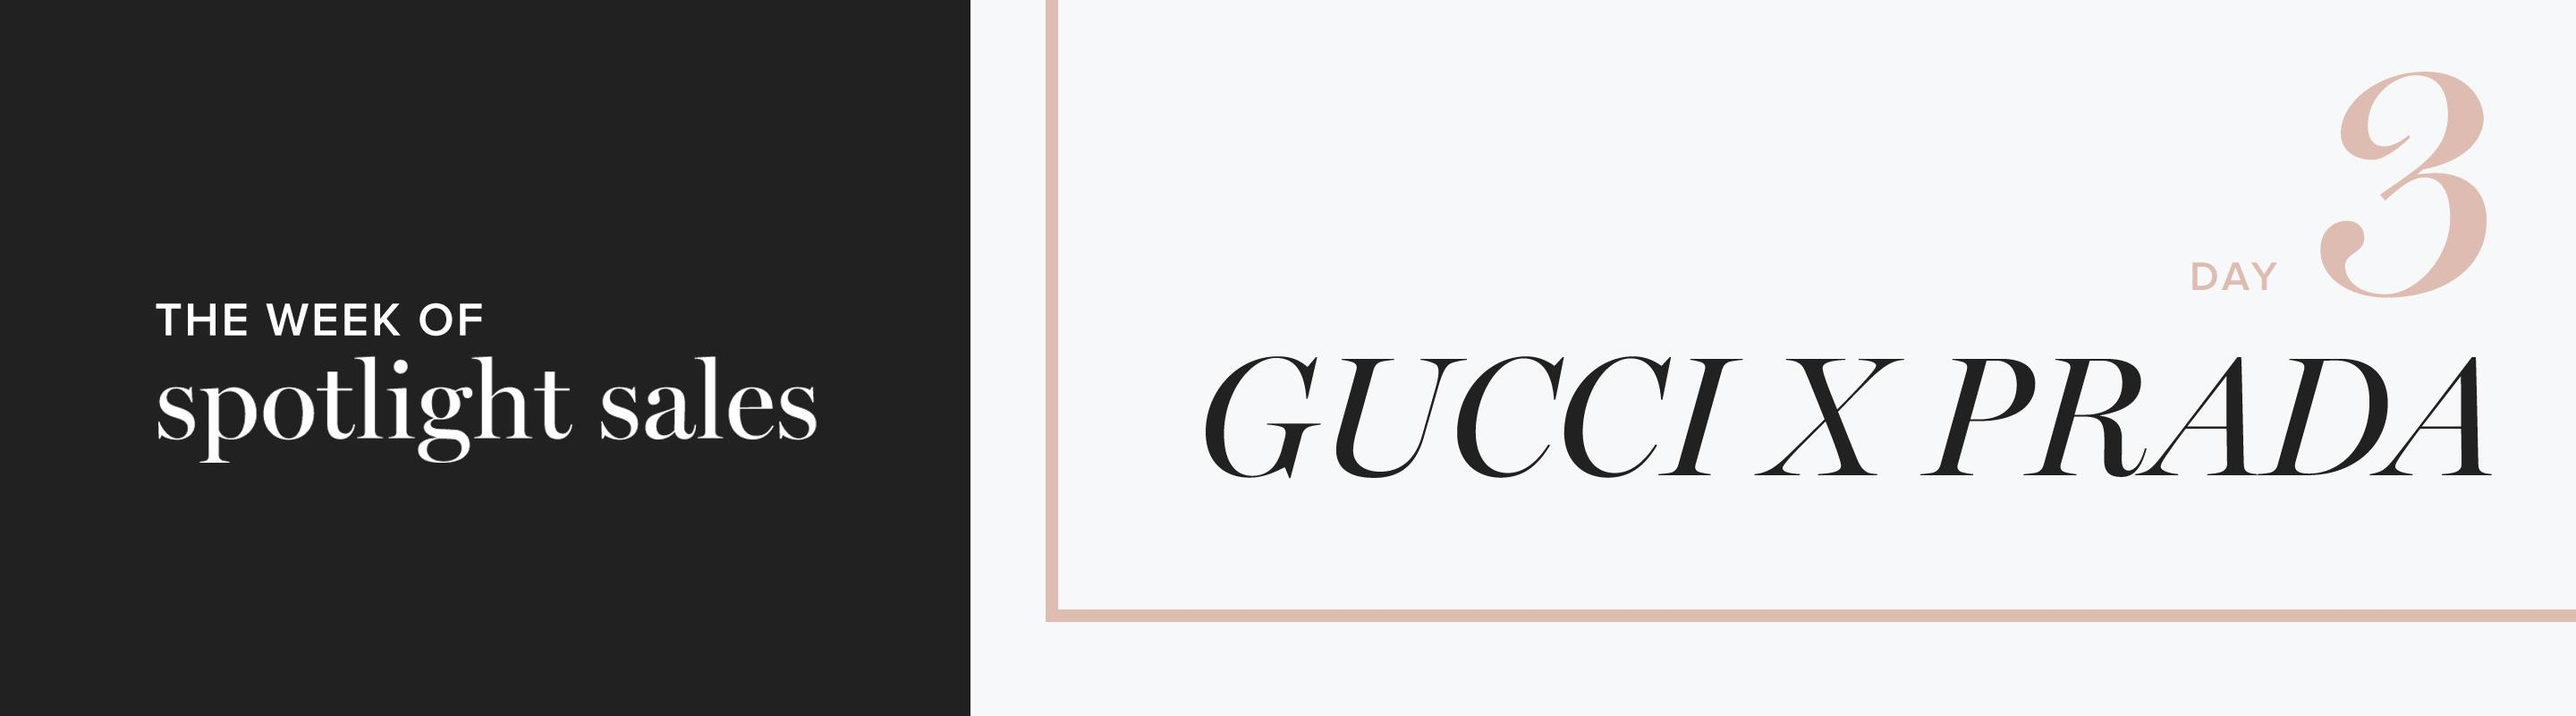 The Week Of Spotlight Sales: Gucci X Prada